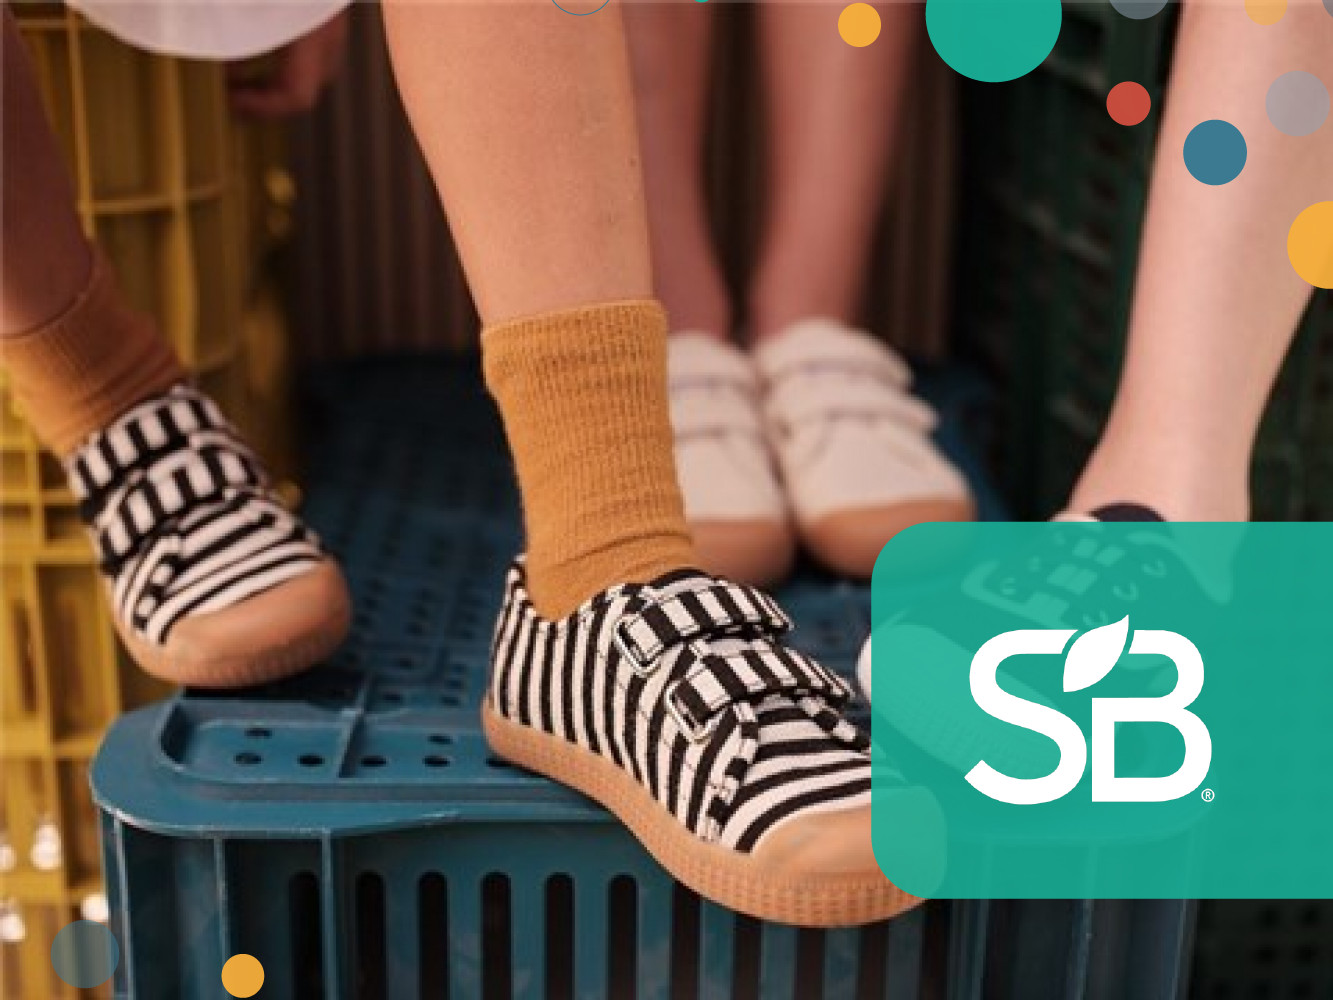 Braskem's Renewable Resin Used to Make Insoles for Recyclable Sneakers of Brazilian Tnin Shoes